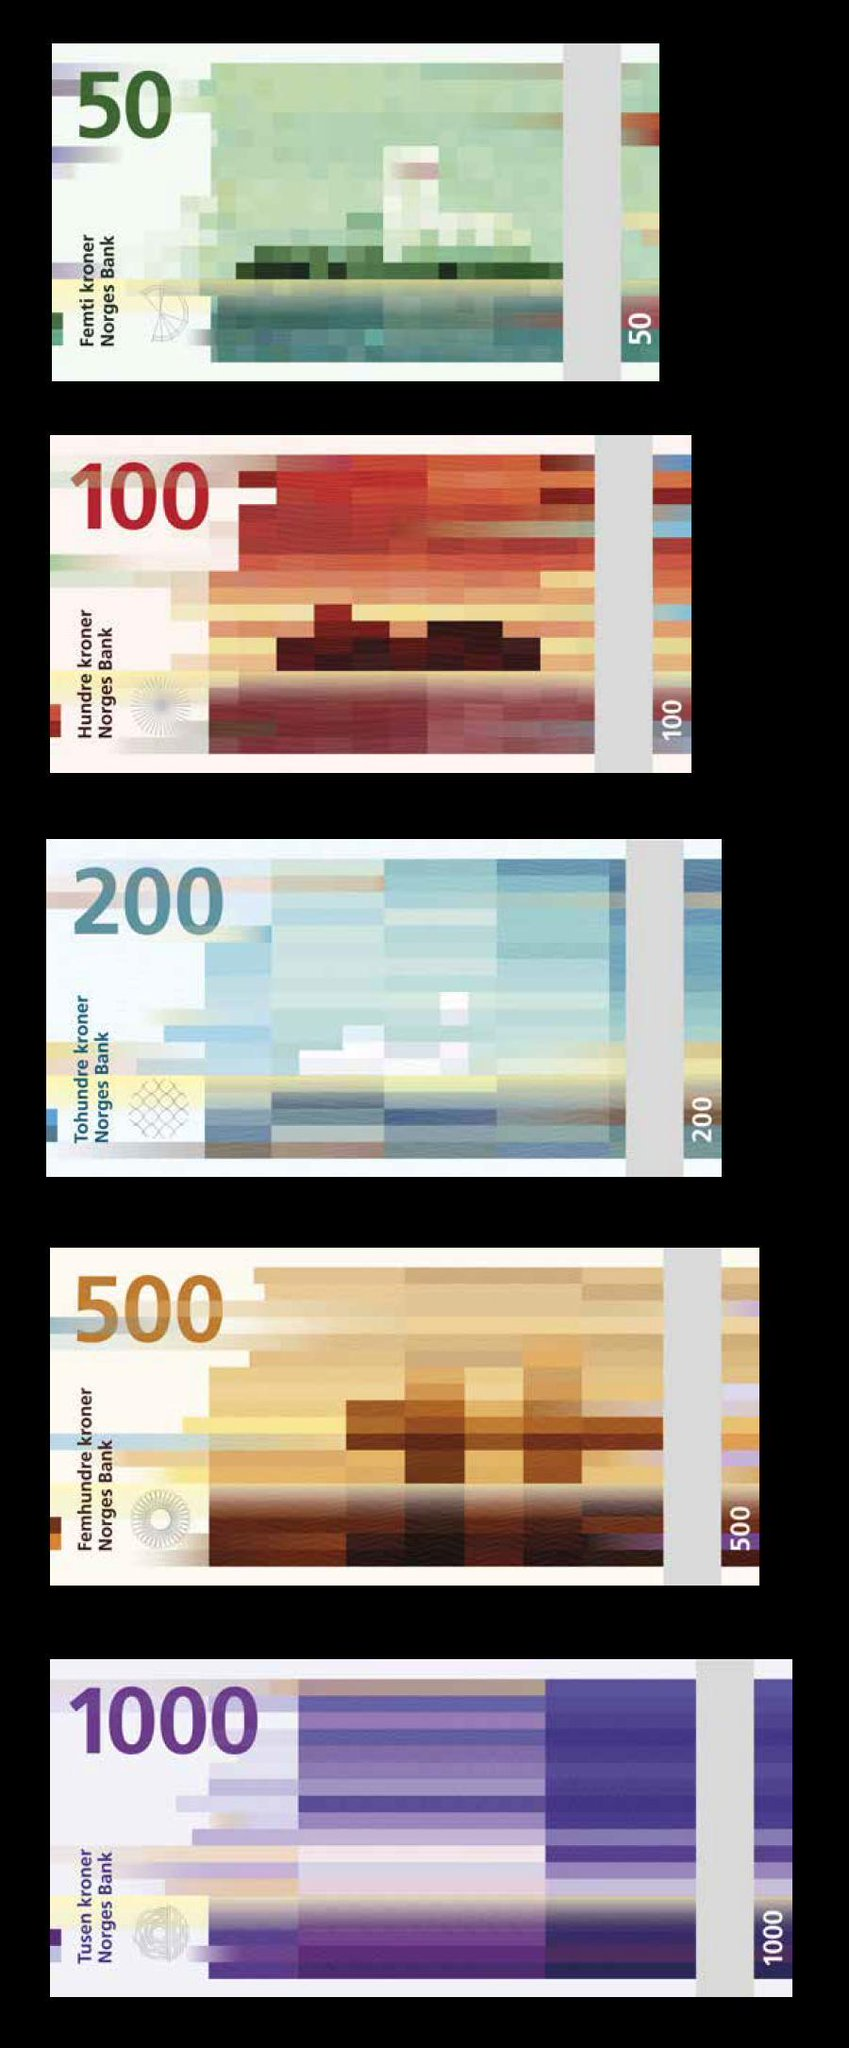 The new Norwegian currency design. Yes, really. http://t.co/HpL3ClpRj5